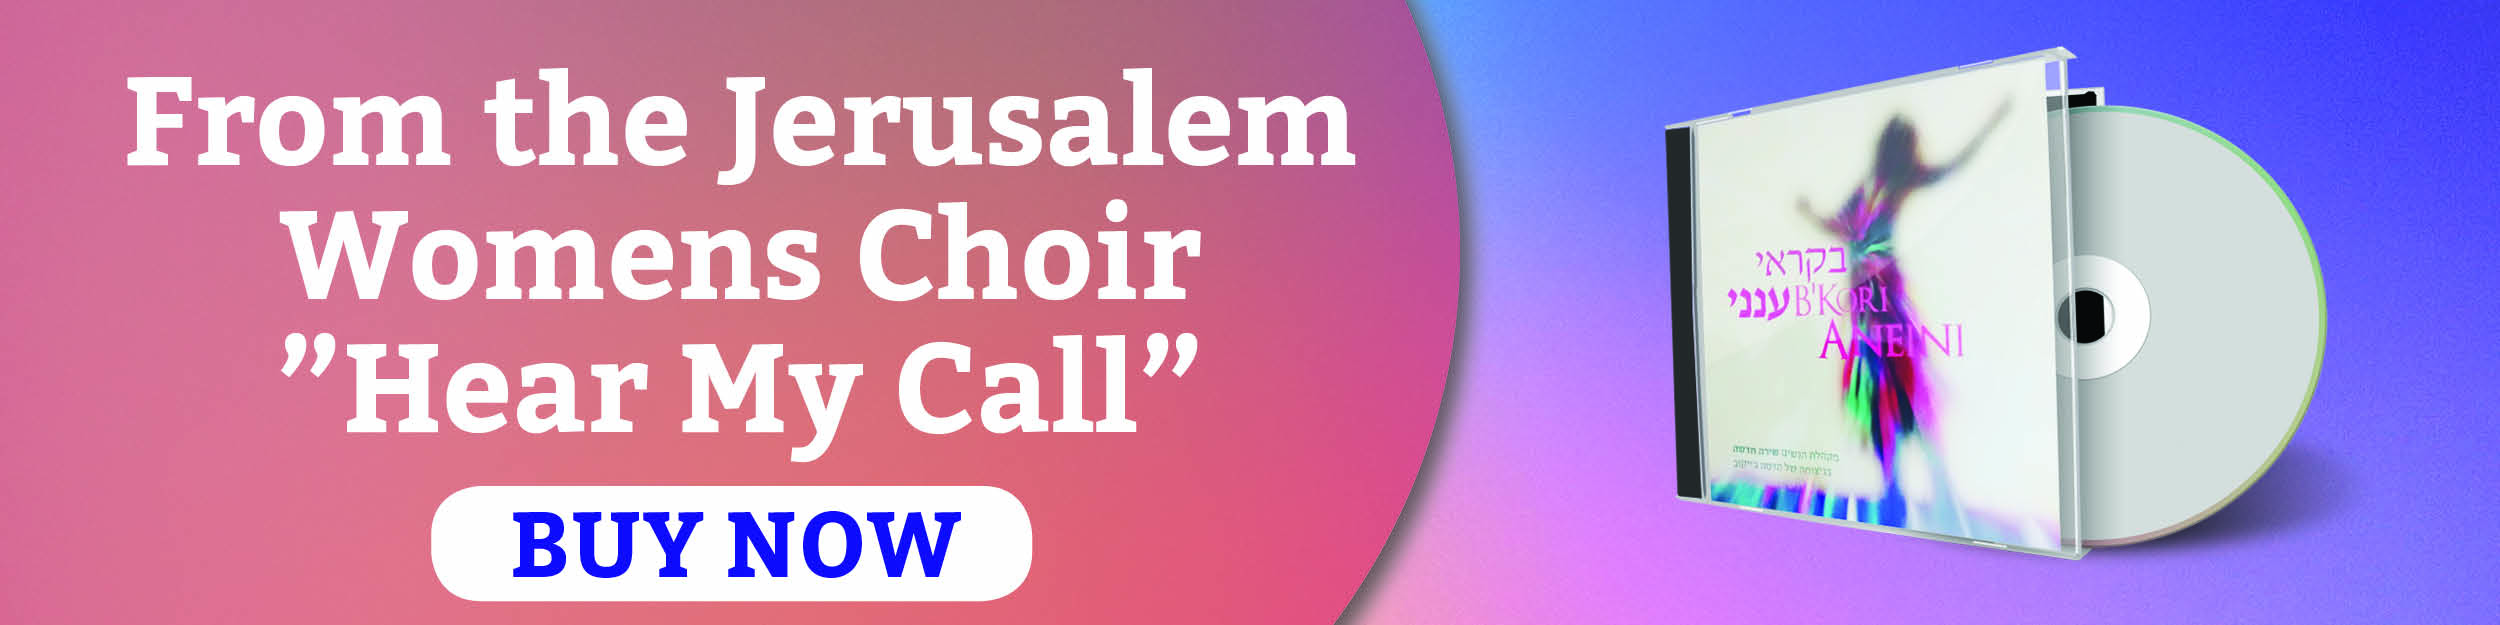 "From the Jerusalem womens choir ""Hear My Call"" CD. Buy now."